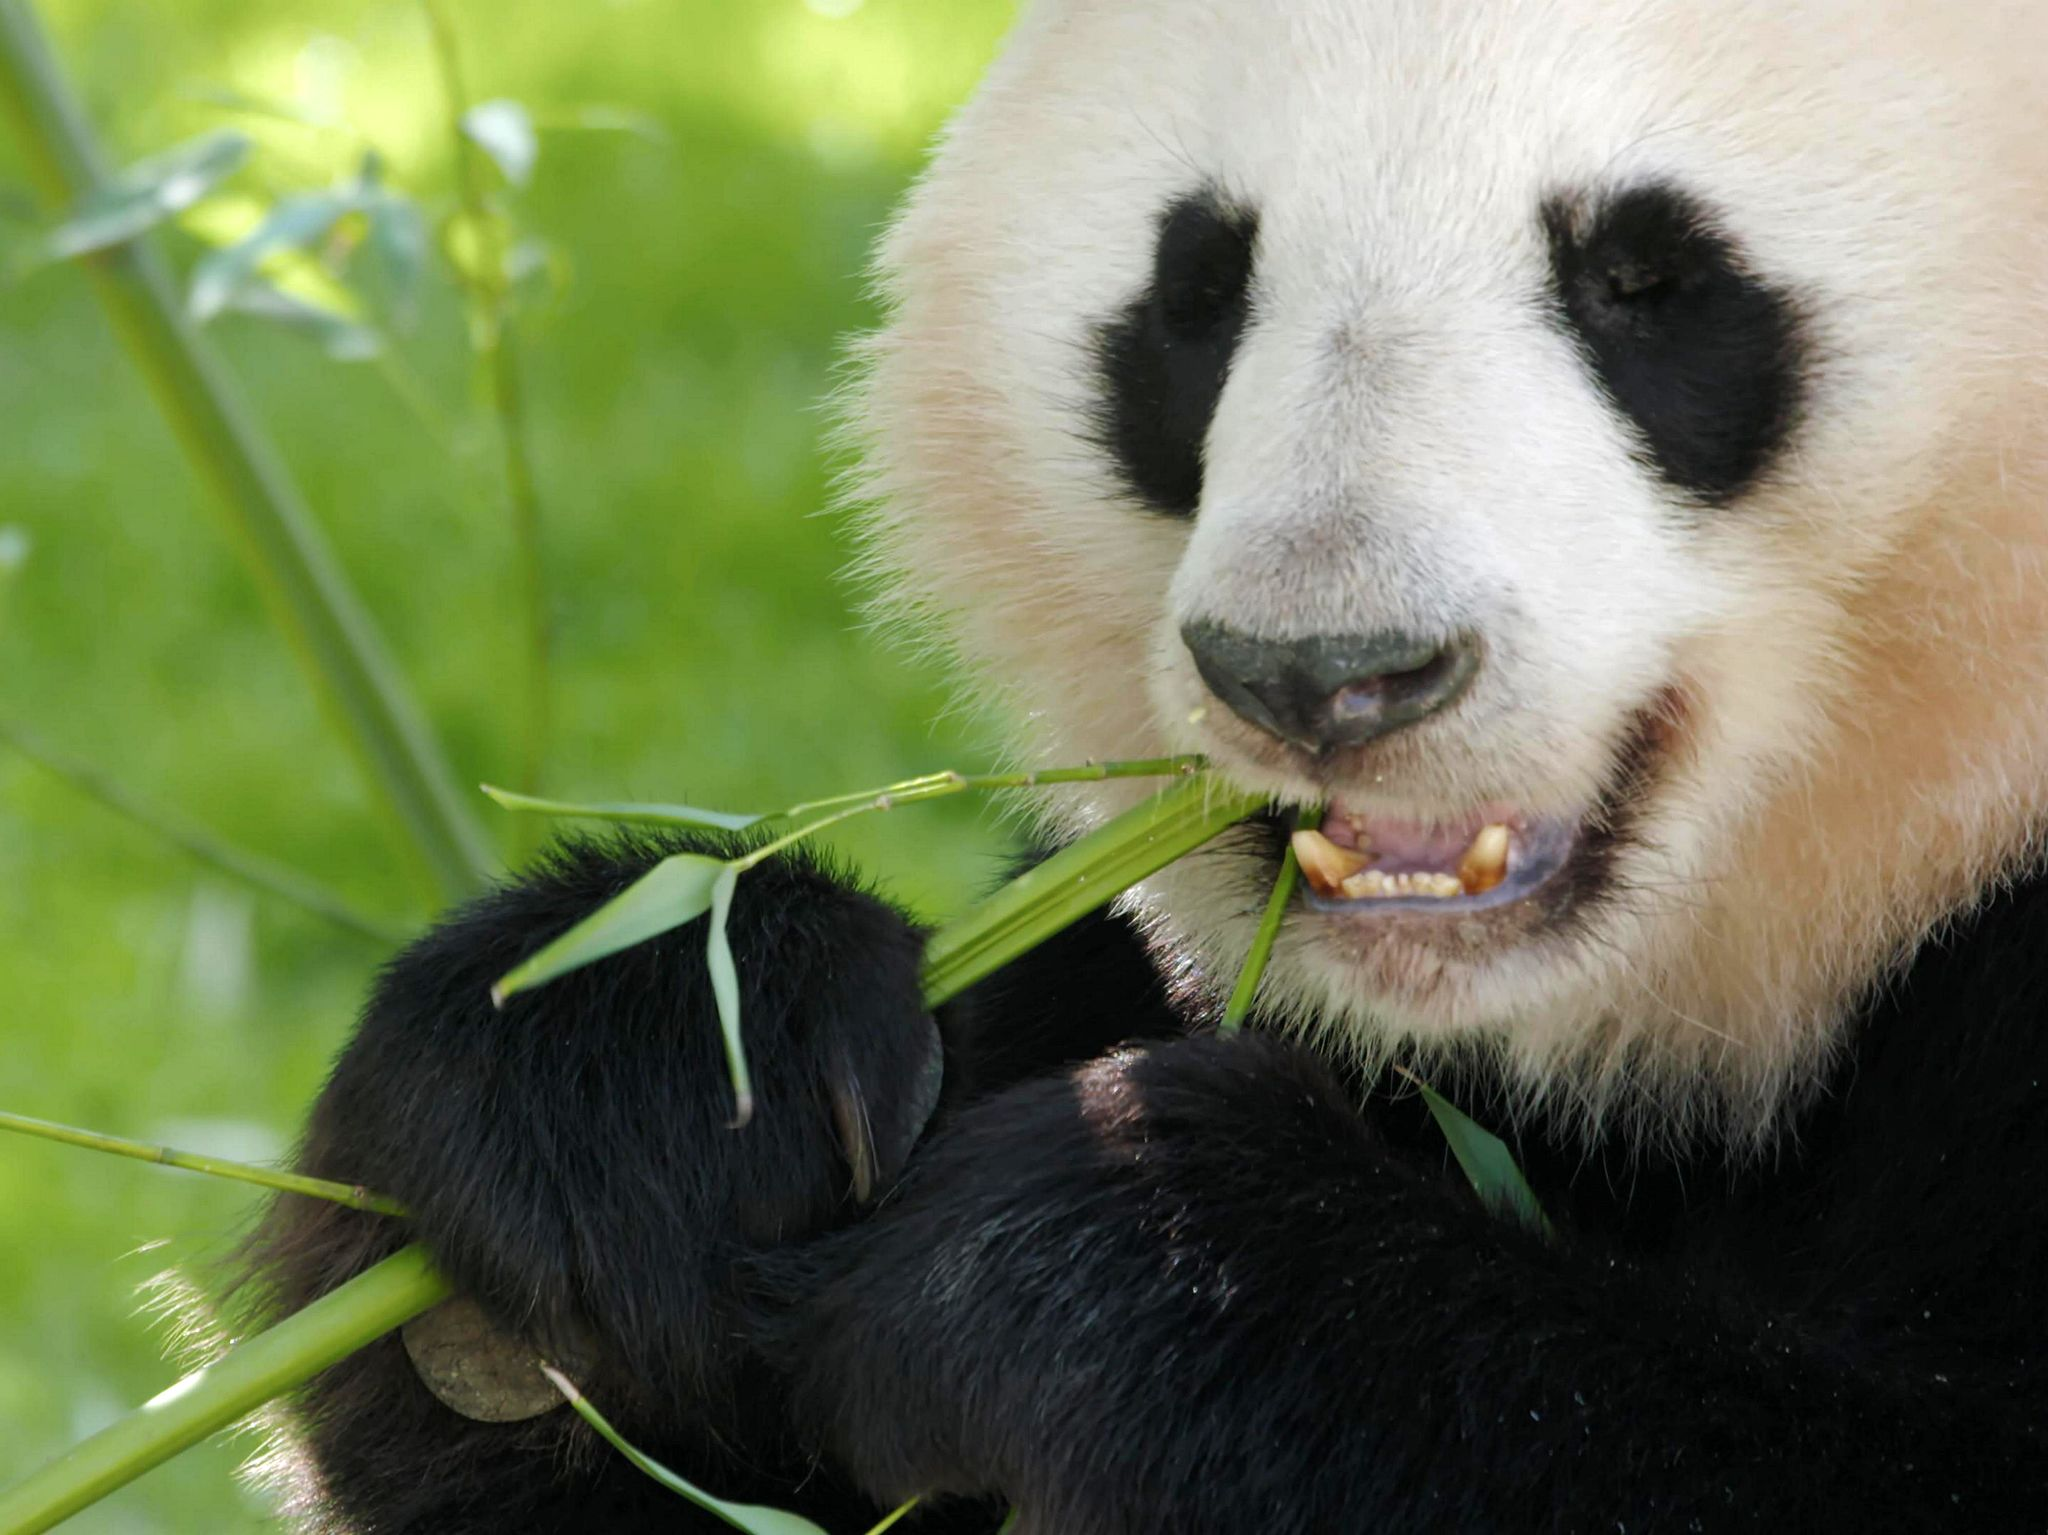 A closeup of a giant panda munching on some bamboo. This image is from Wild Hunters. [Photo of the day - April 2020]